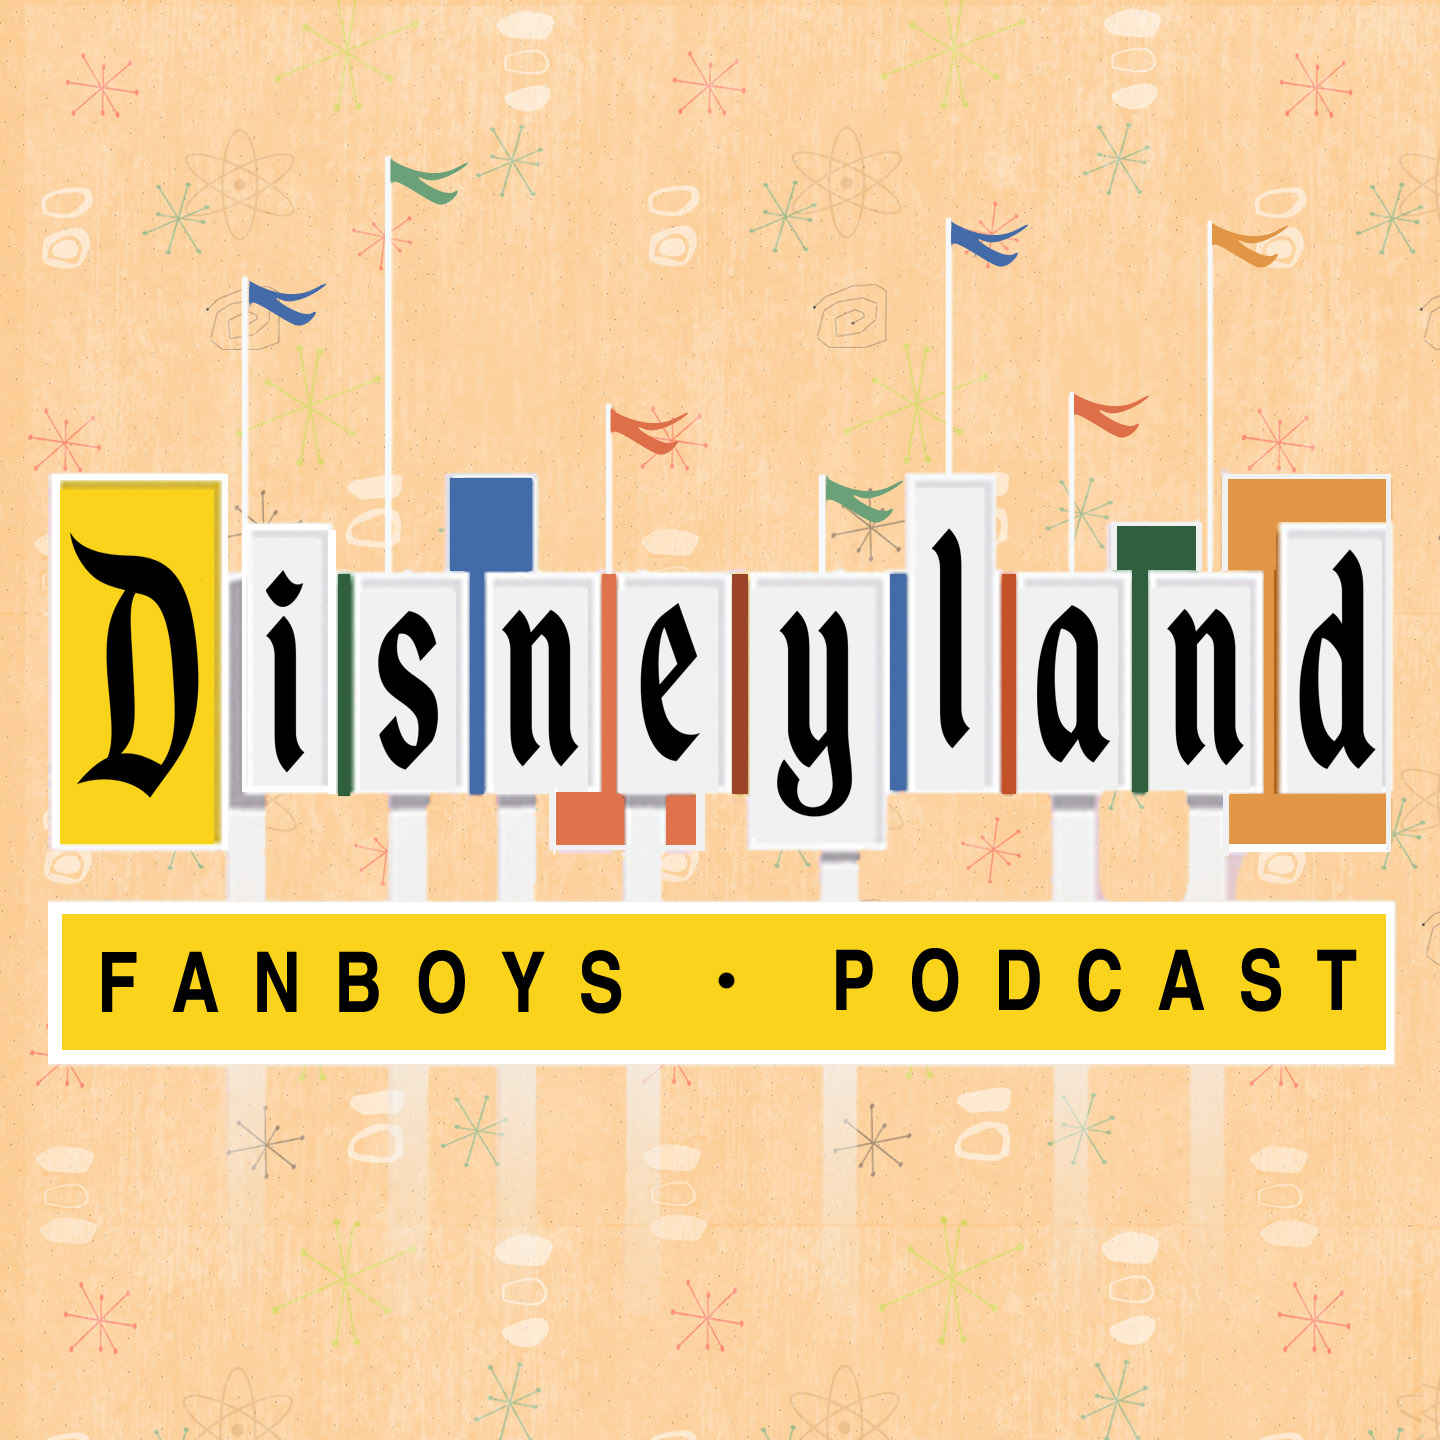 Disneyland Fanboys Podcast